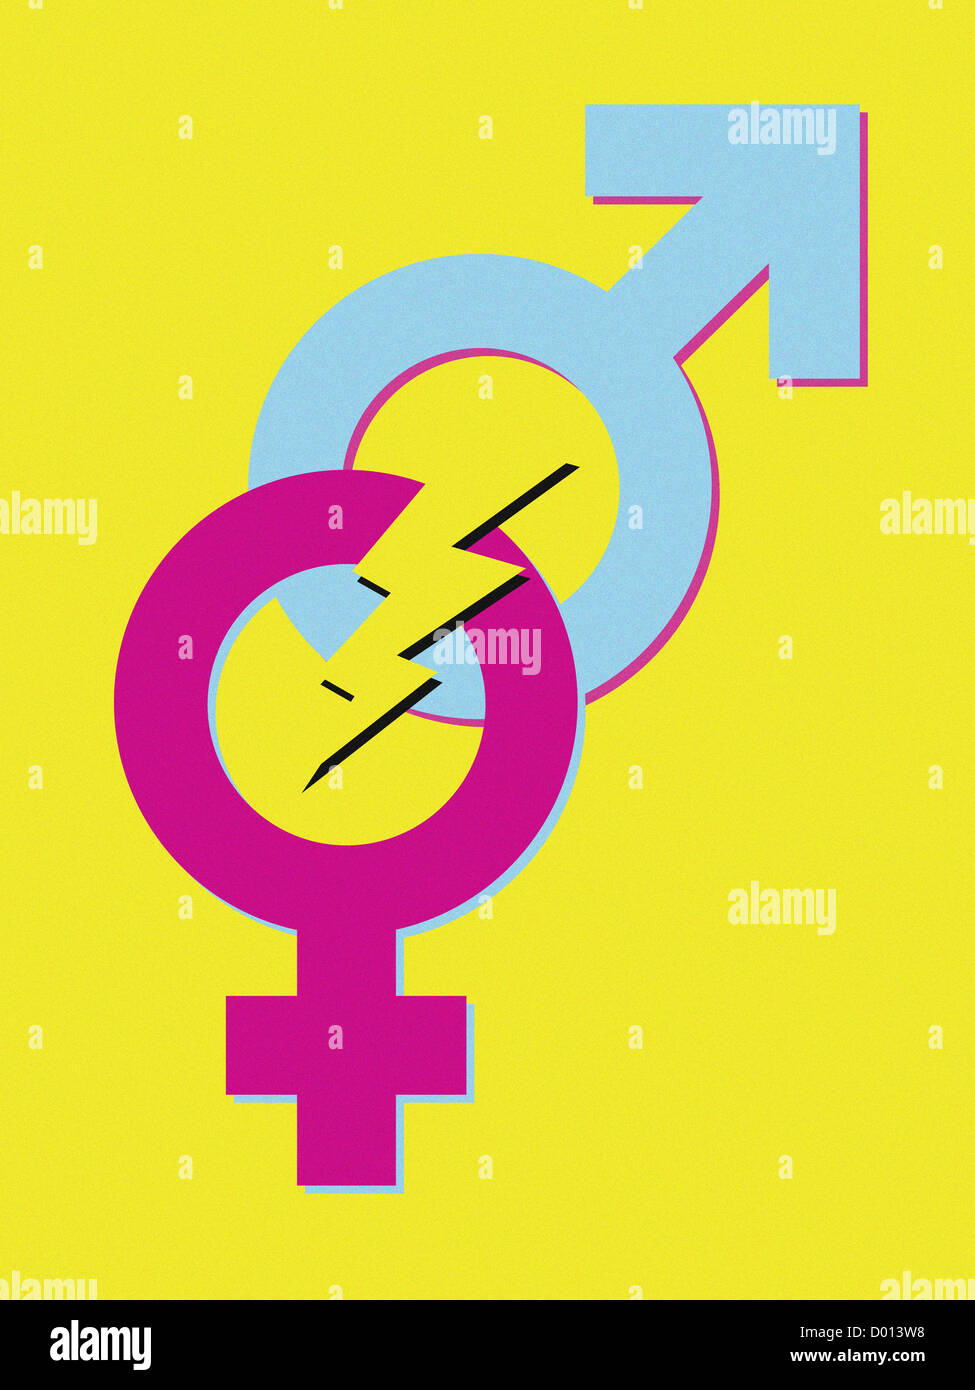 Male And Female Symbols With Lightning In Between Stock Photo